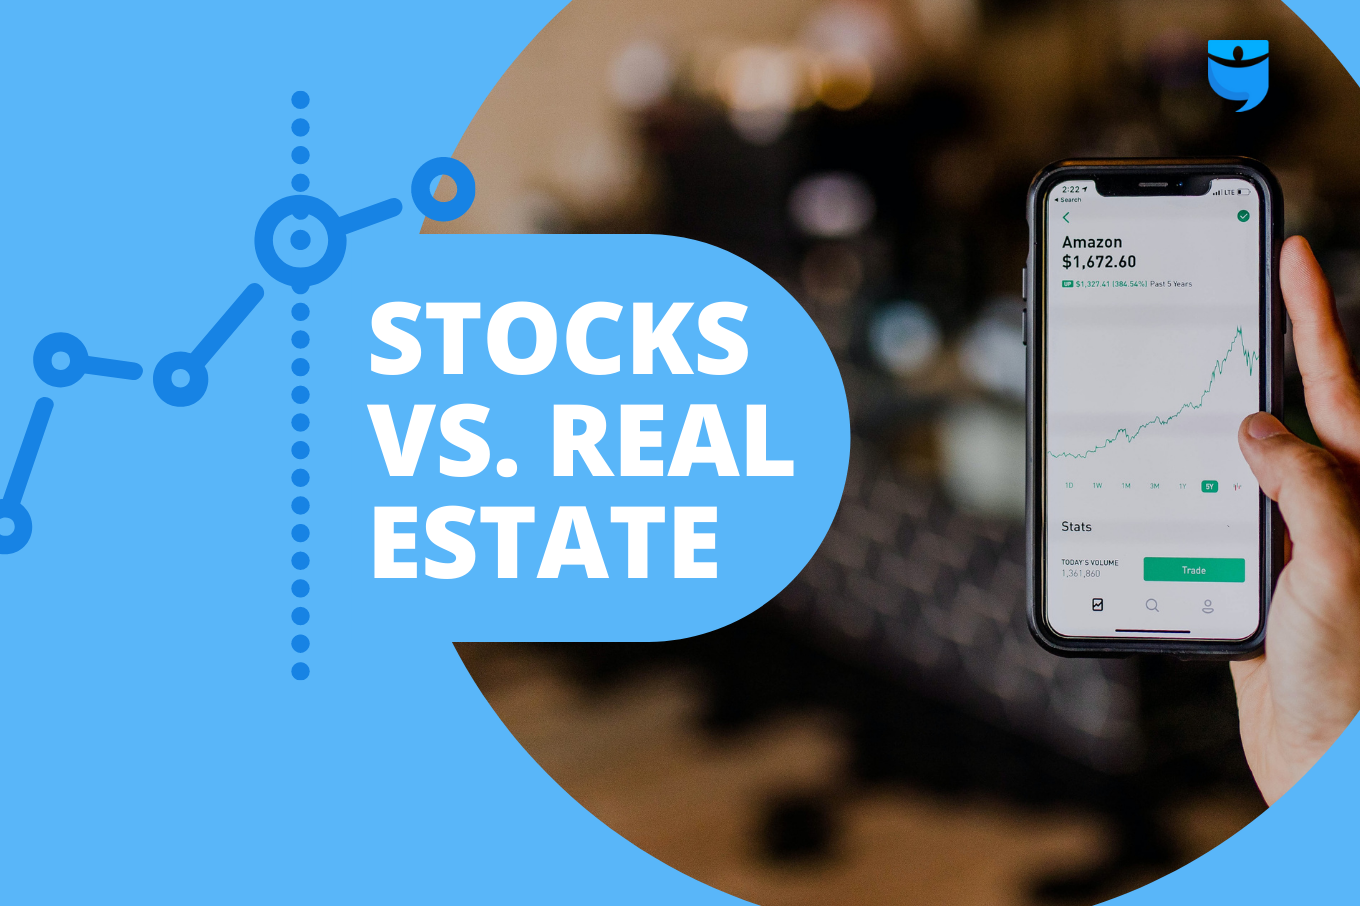 What Offers the Best Return on Investment? 145 Years of Real Estate vs. Stocks